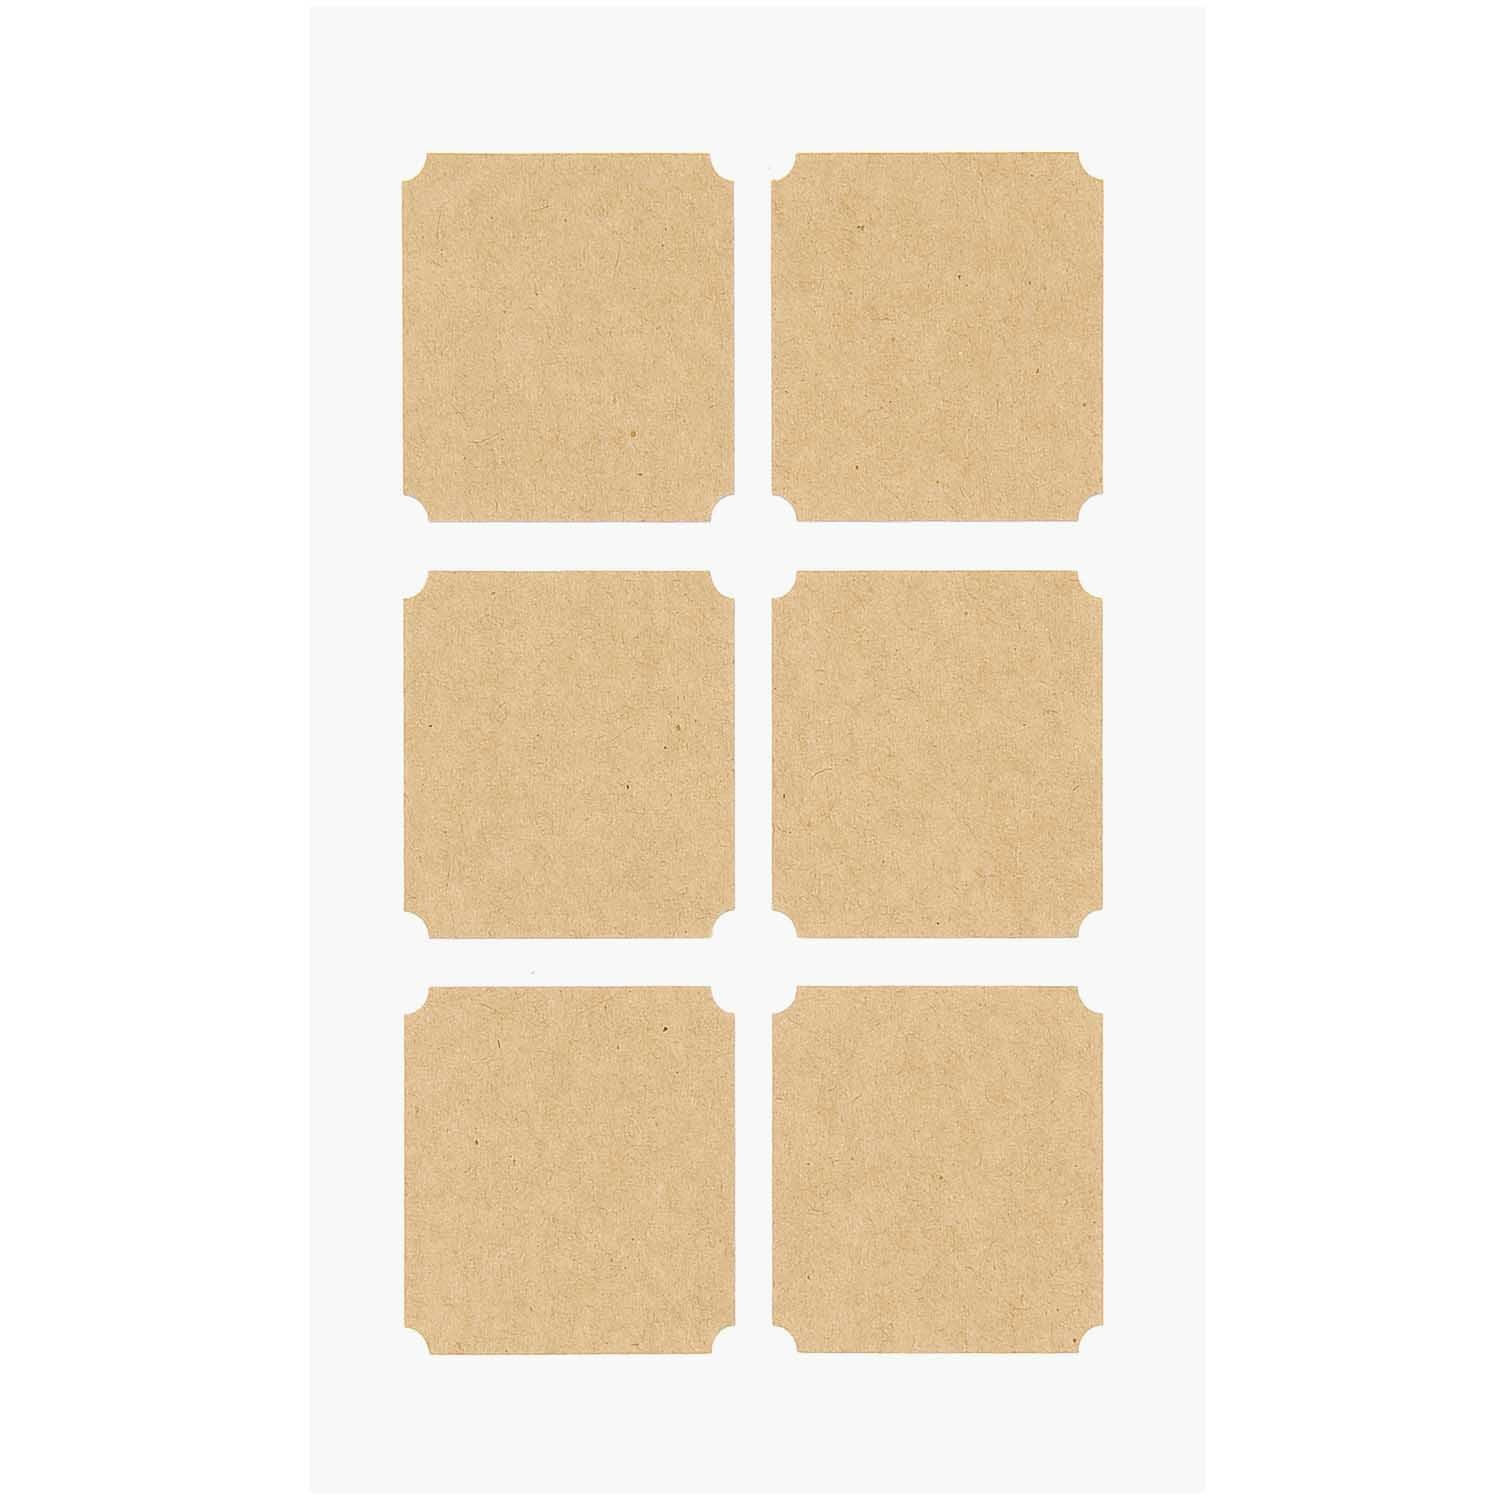 Rico NAY CRAFT PAPER STICKERS, SQUARE TAGS 15 X 10 CM, 24 PCS